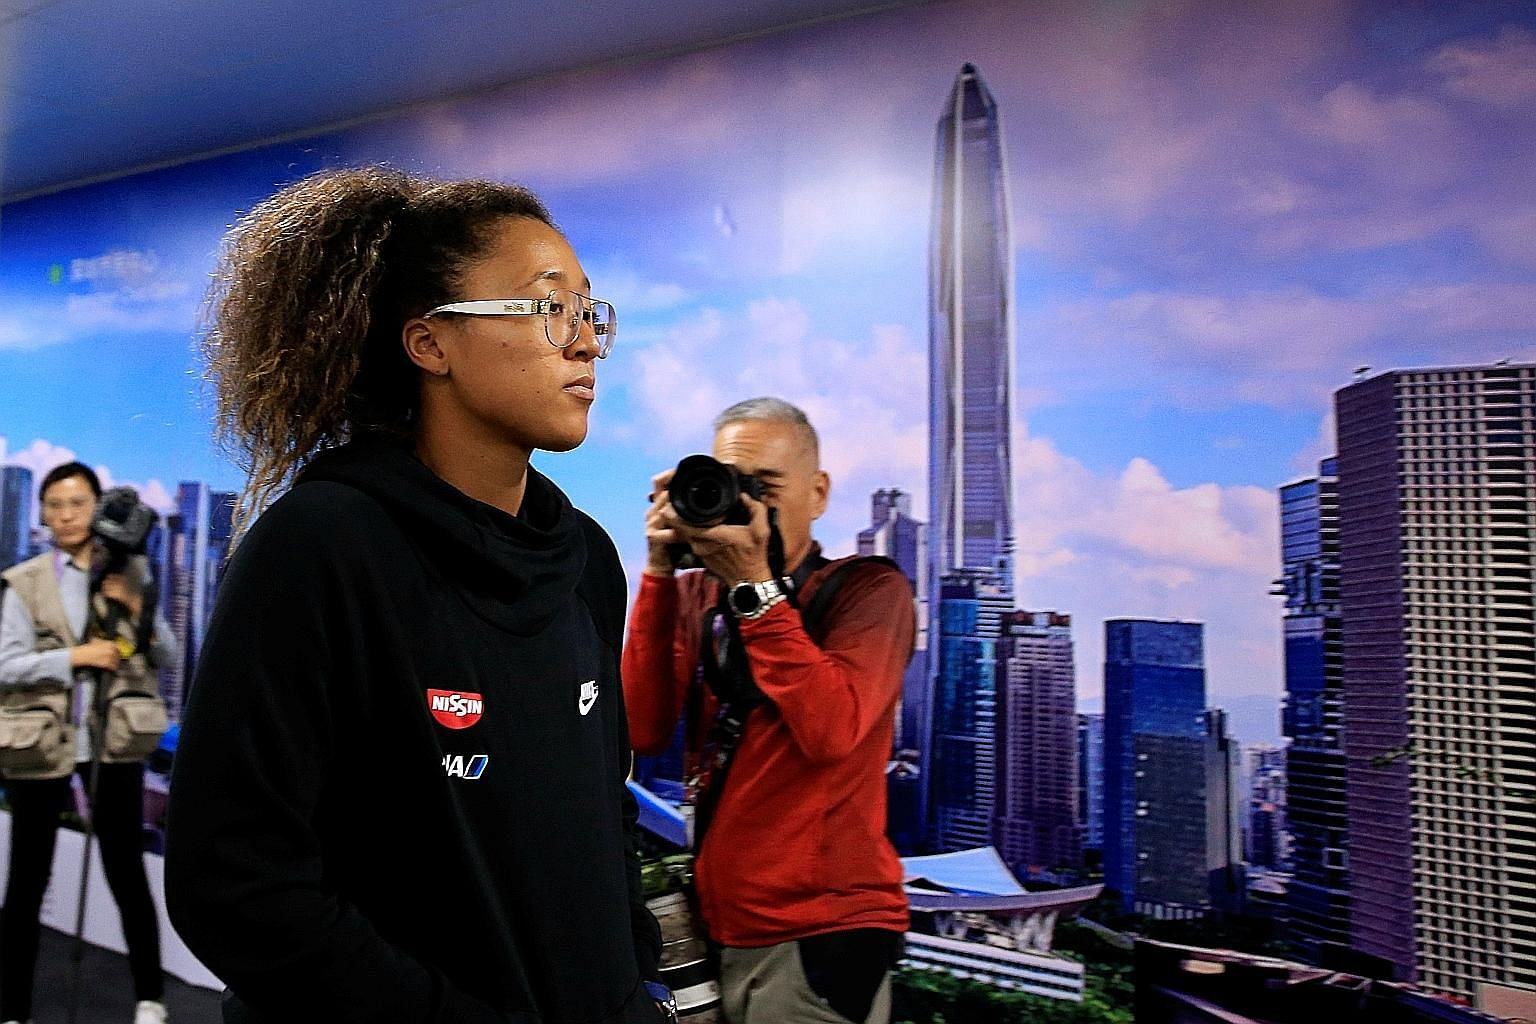 A downcast Japanese star Naomi Osaka leaving after yesterday's news conference. She pulled out of the WTA Finals in Shenzhen with a shoulder injury. Last year, she retired from her final match in the group stage during the tournament in Singapore.